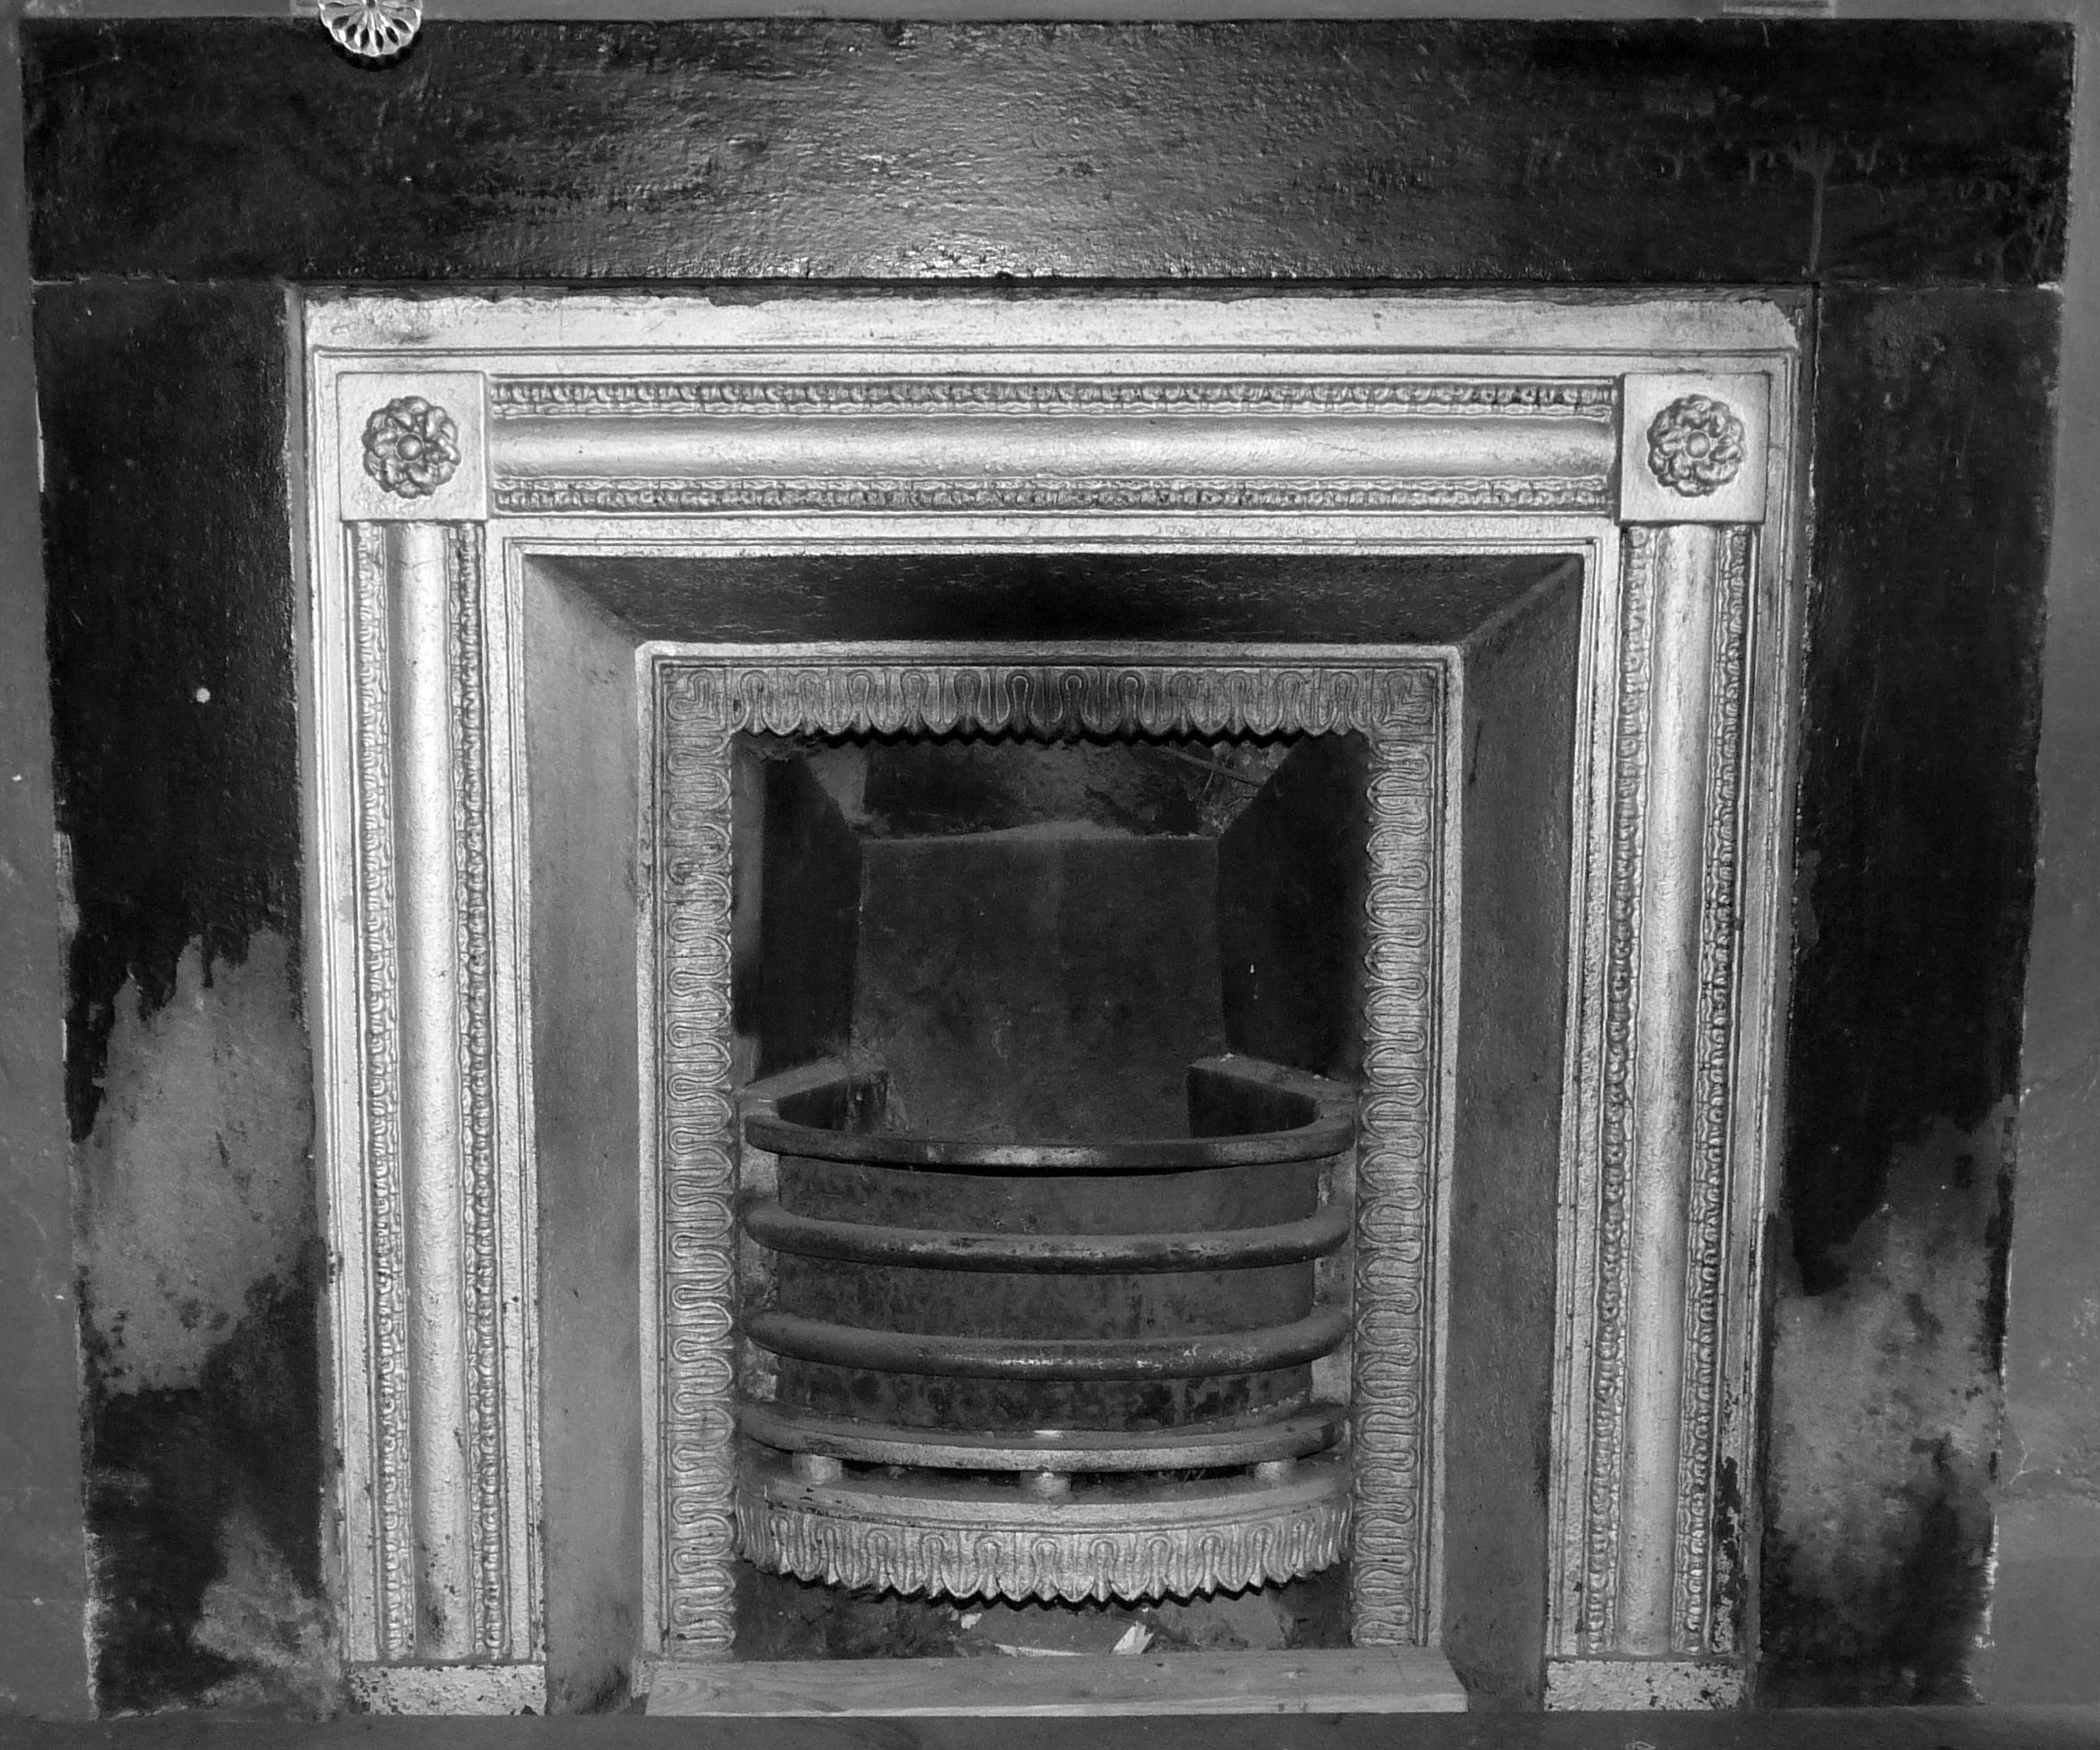 cast iron fireplace in the bedroom painted silver sometime in the